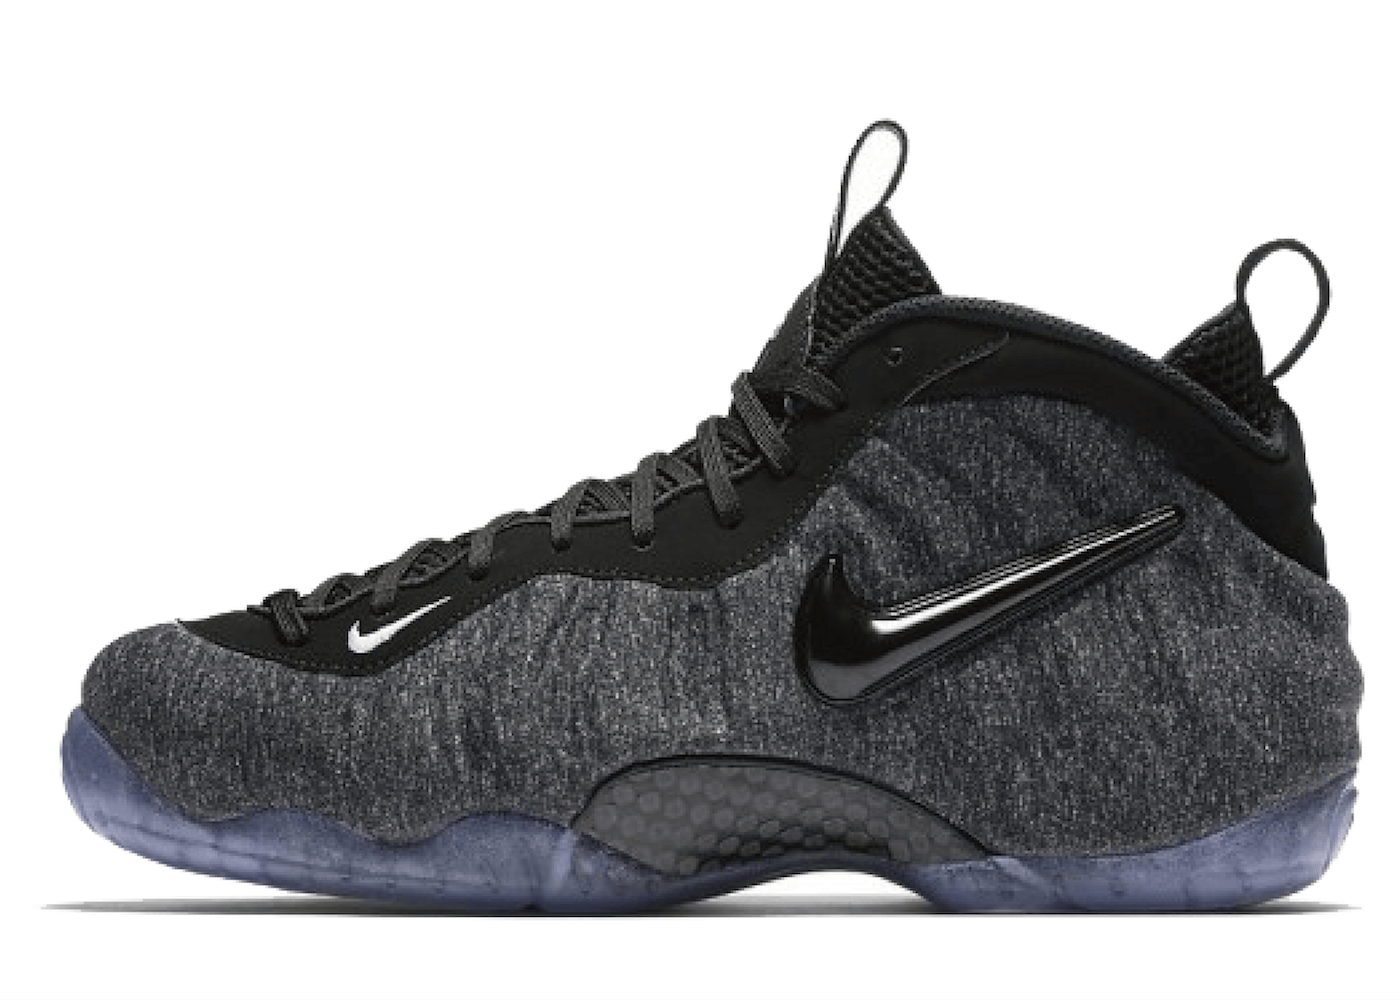 Nike Air Foamposite Pro Wool Fleeceの写真